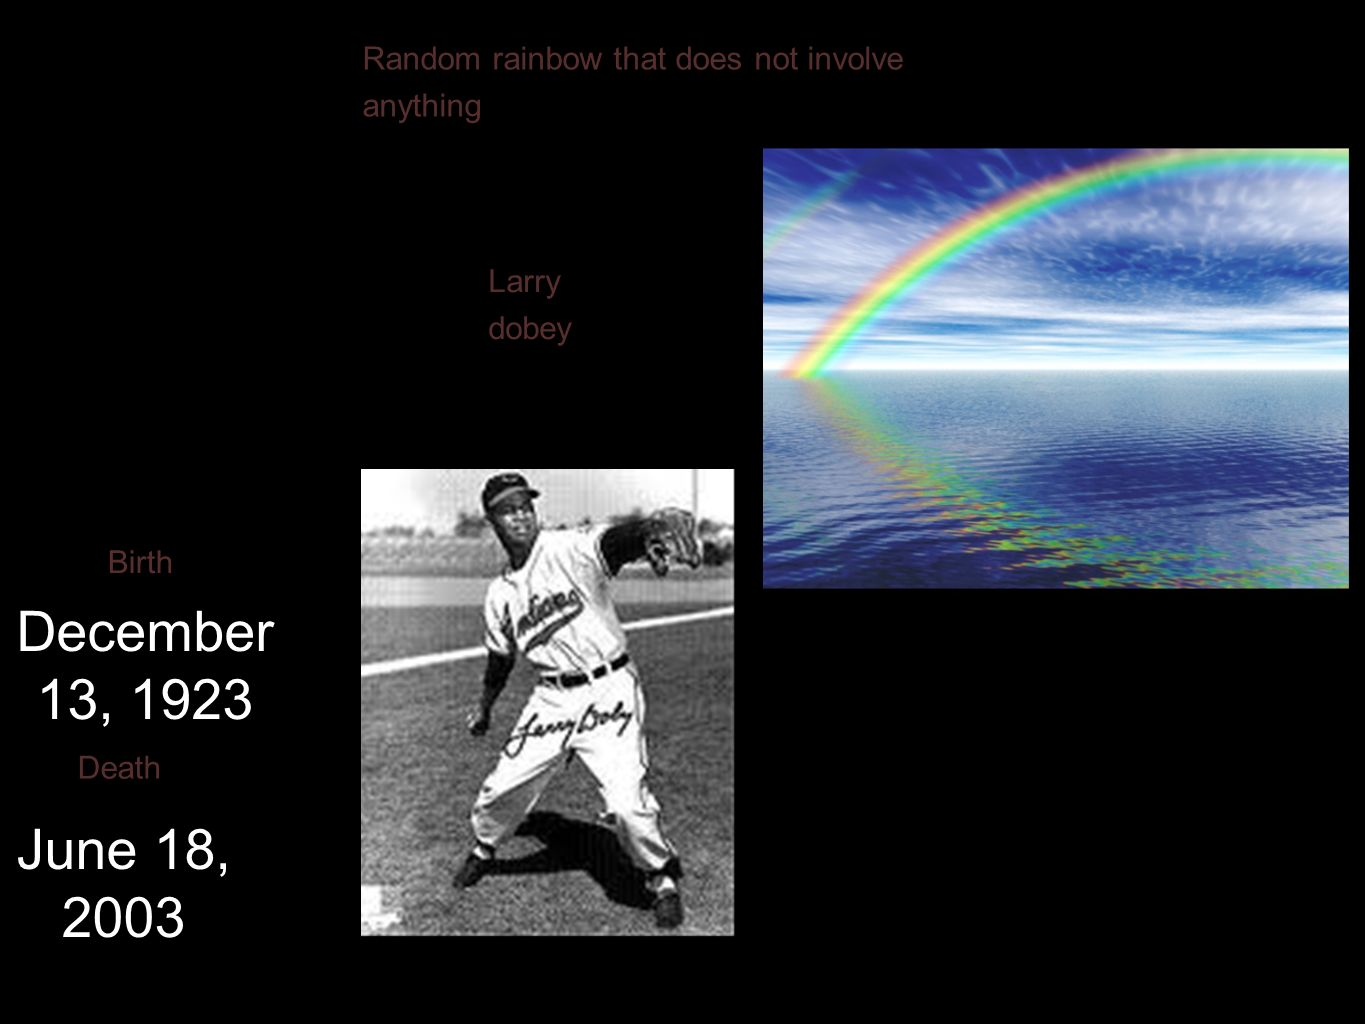 Larry dobey December 13, 1923 Birth June 18, 2003 Death Random rainbow that does not involve anything